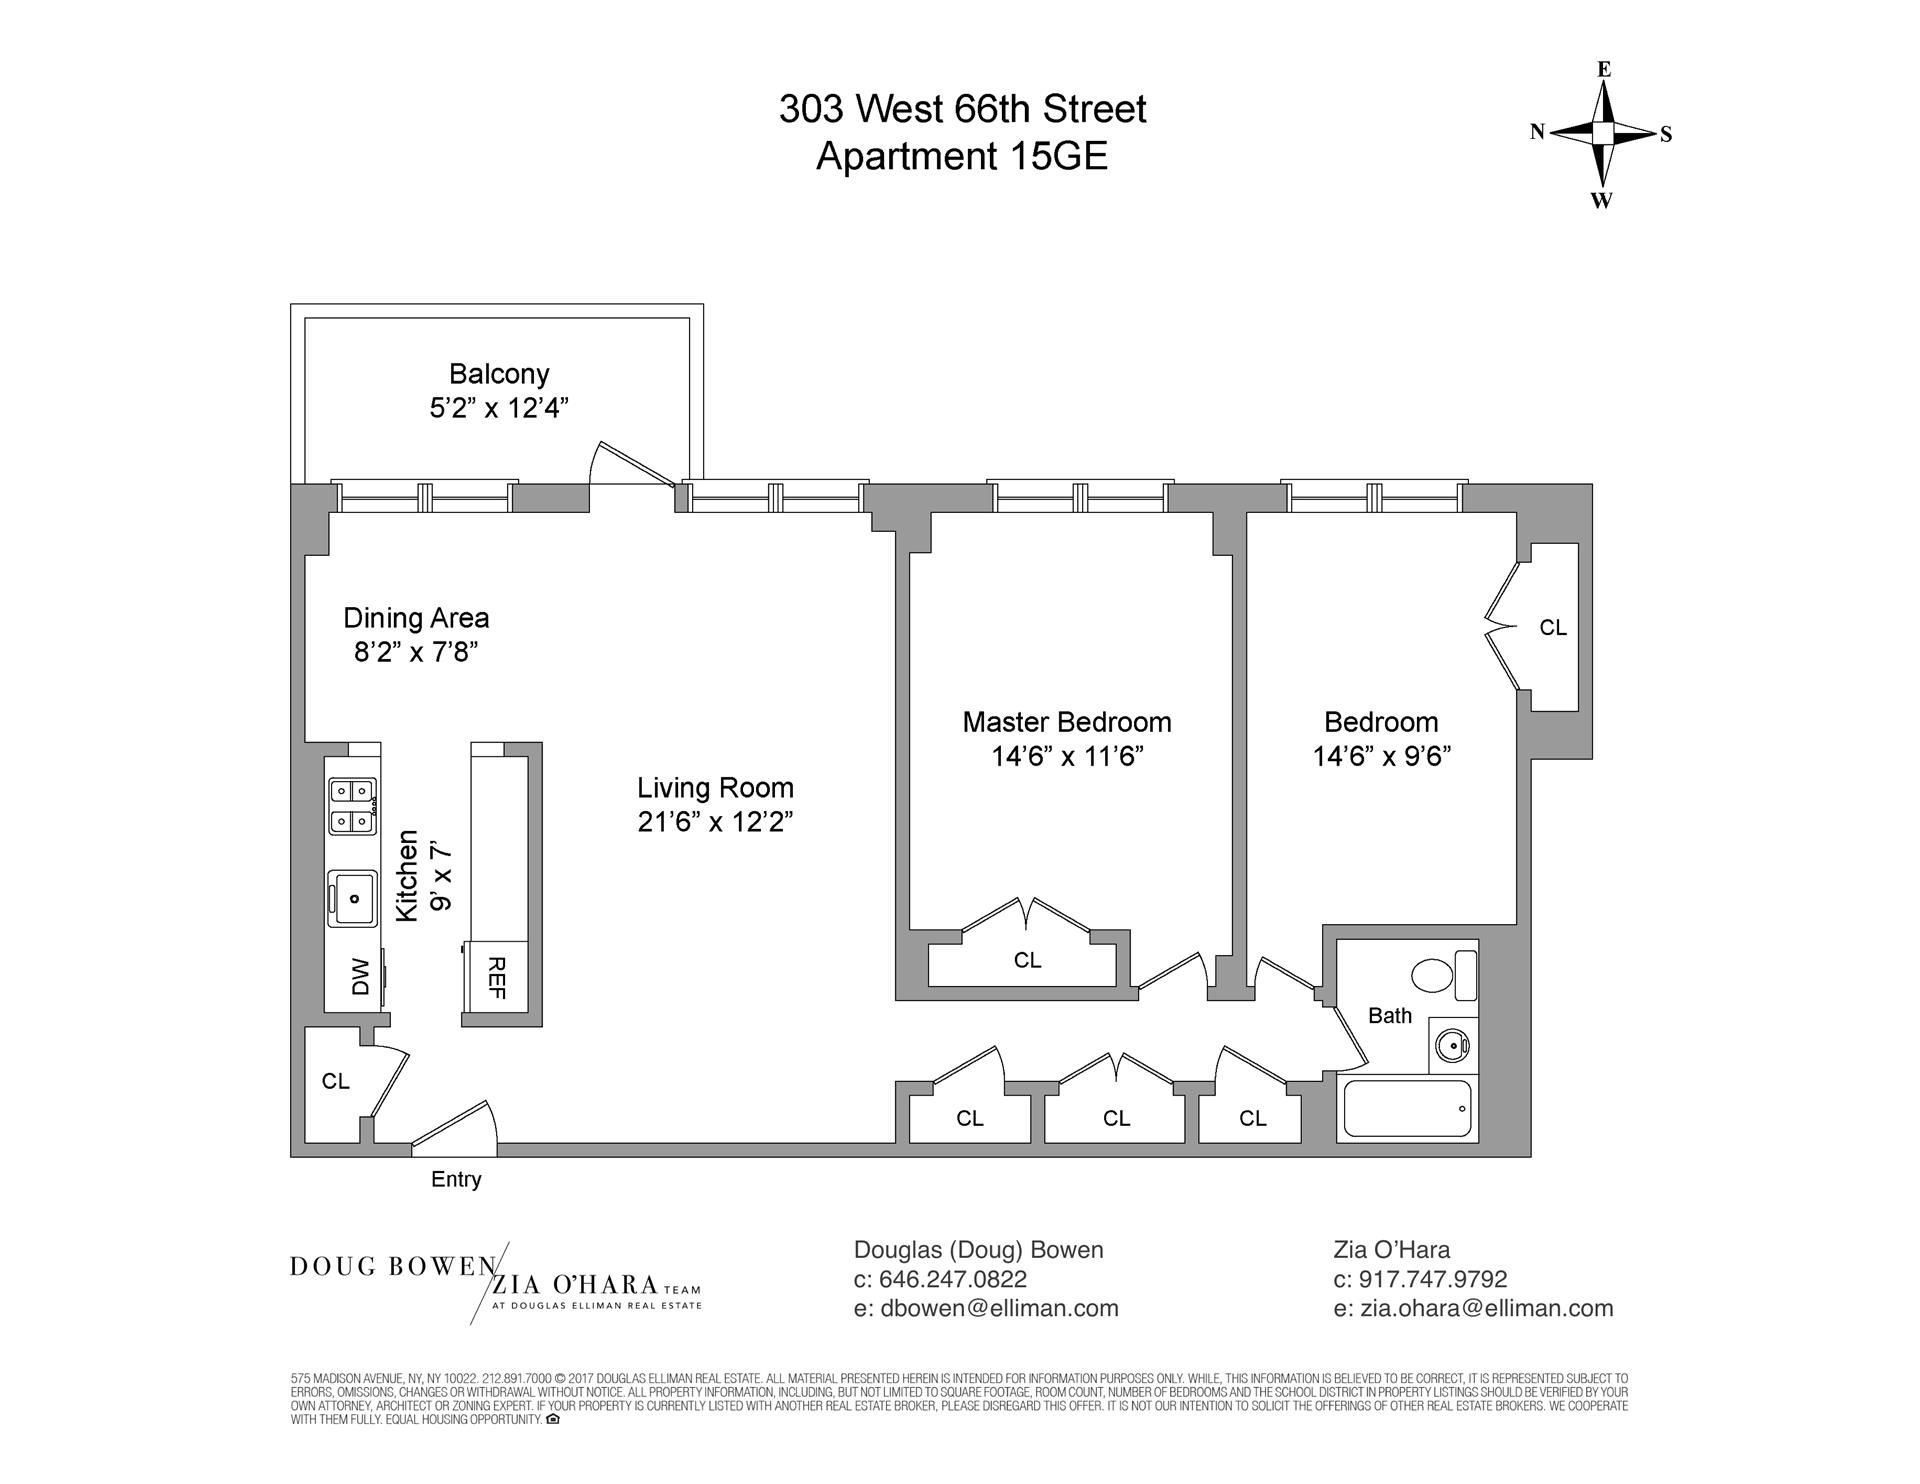 Floor plan of Lincoln Guild Housing Corp, 303 West 66th Street, 15GE - Upper West Side, New York